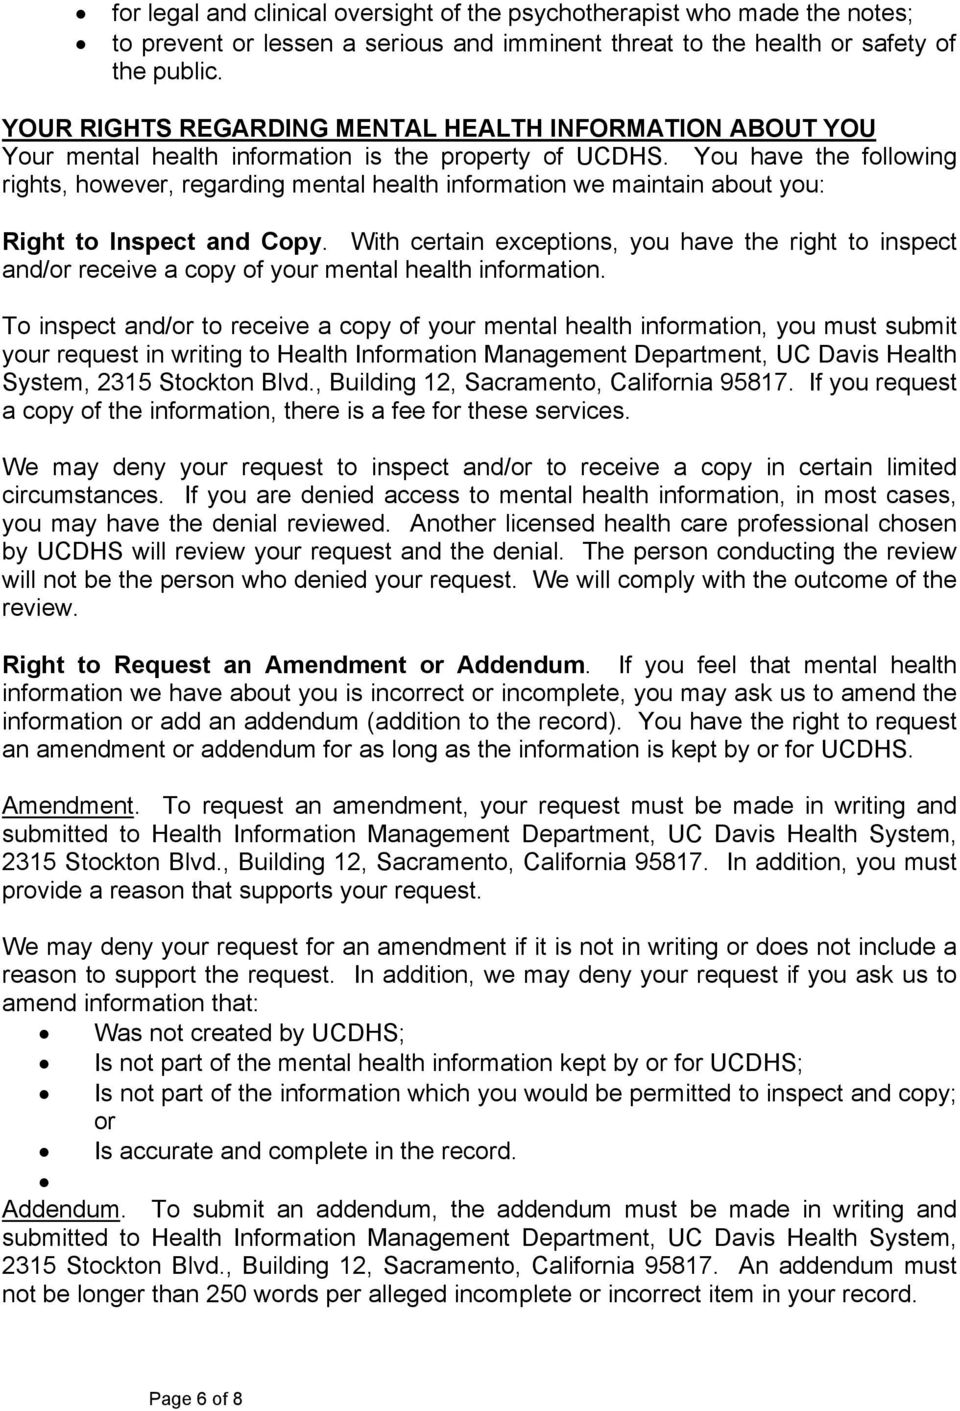 You have the following rights, however, regarding mental health information we maintain about you: Right to Inspect and Copy.